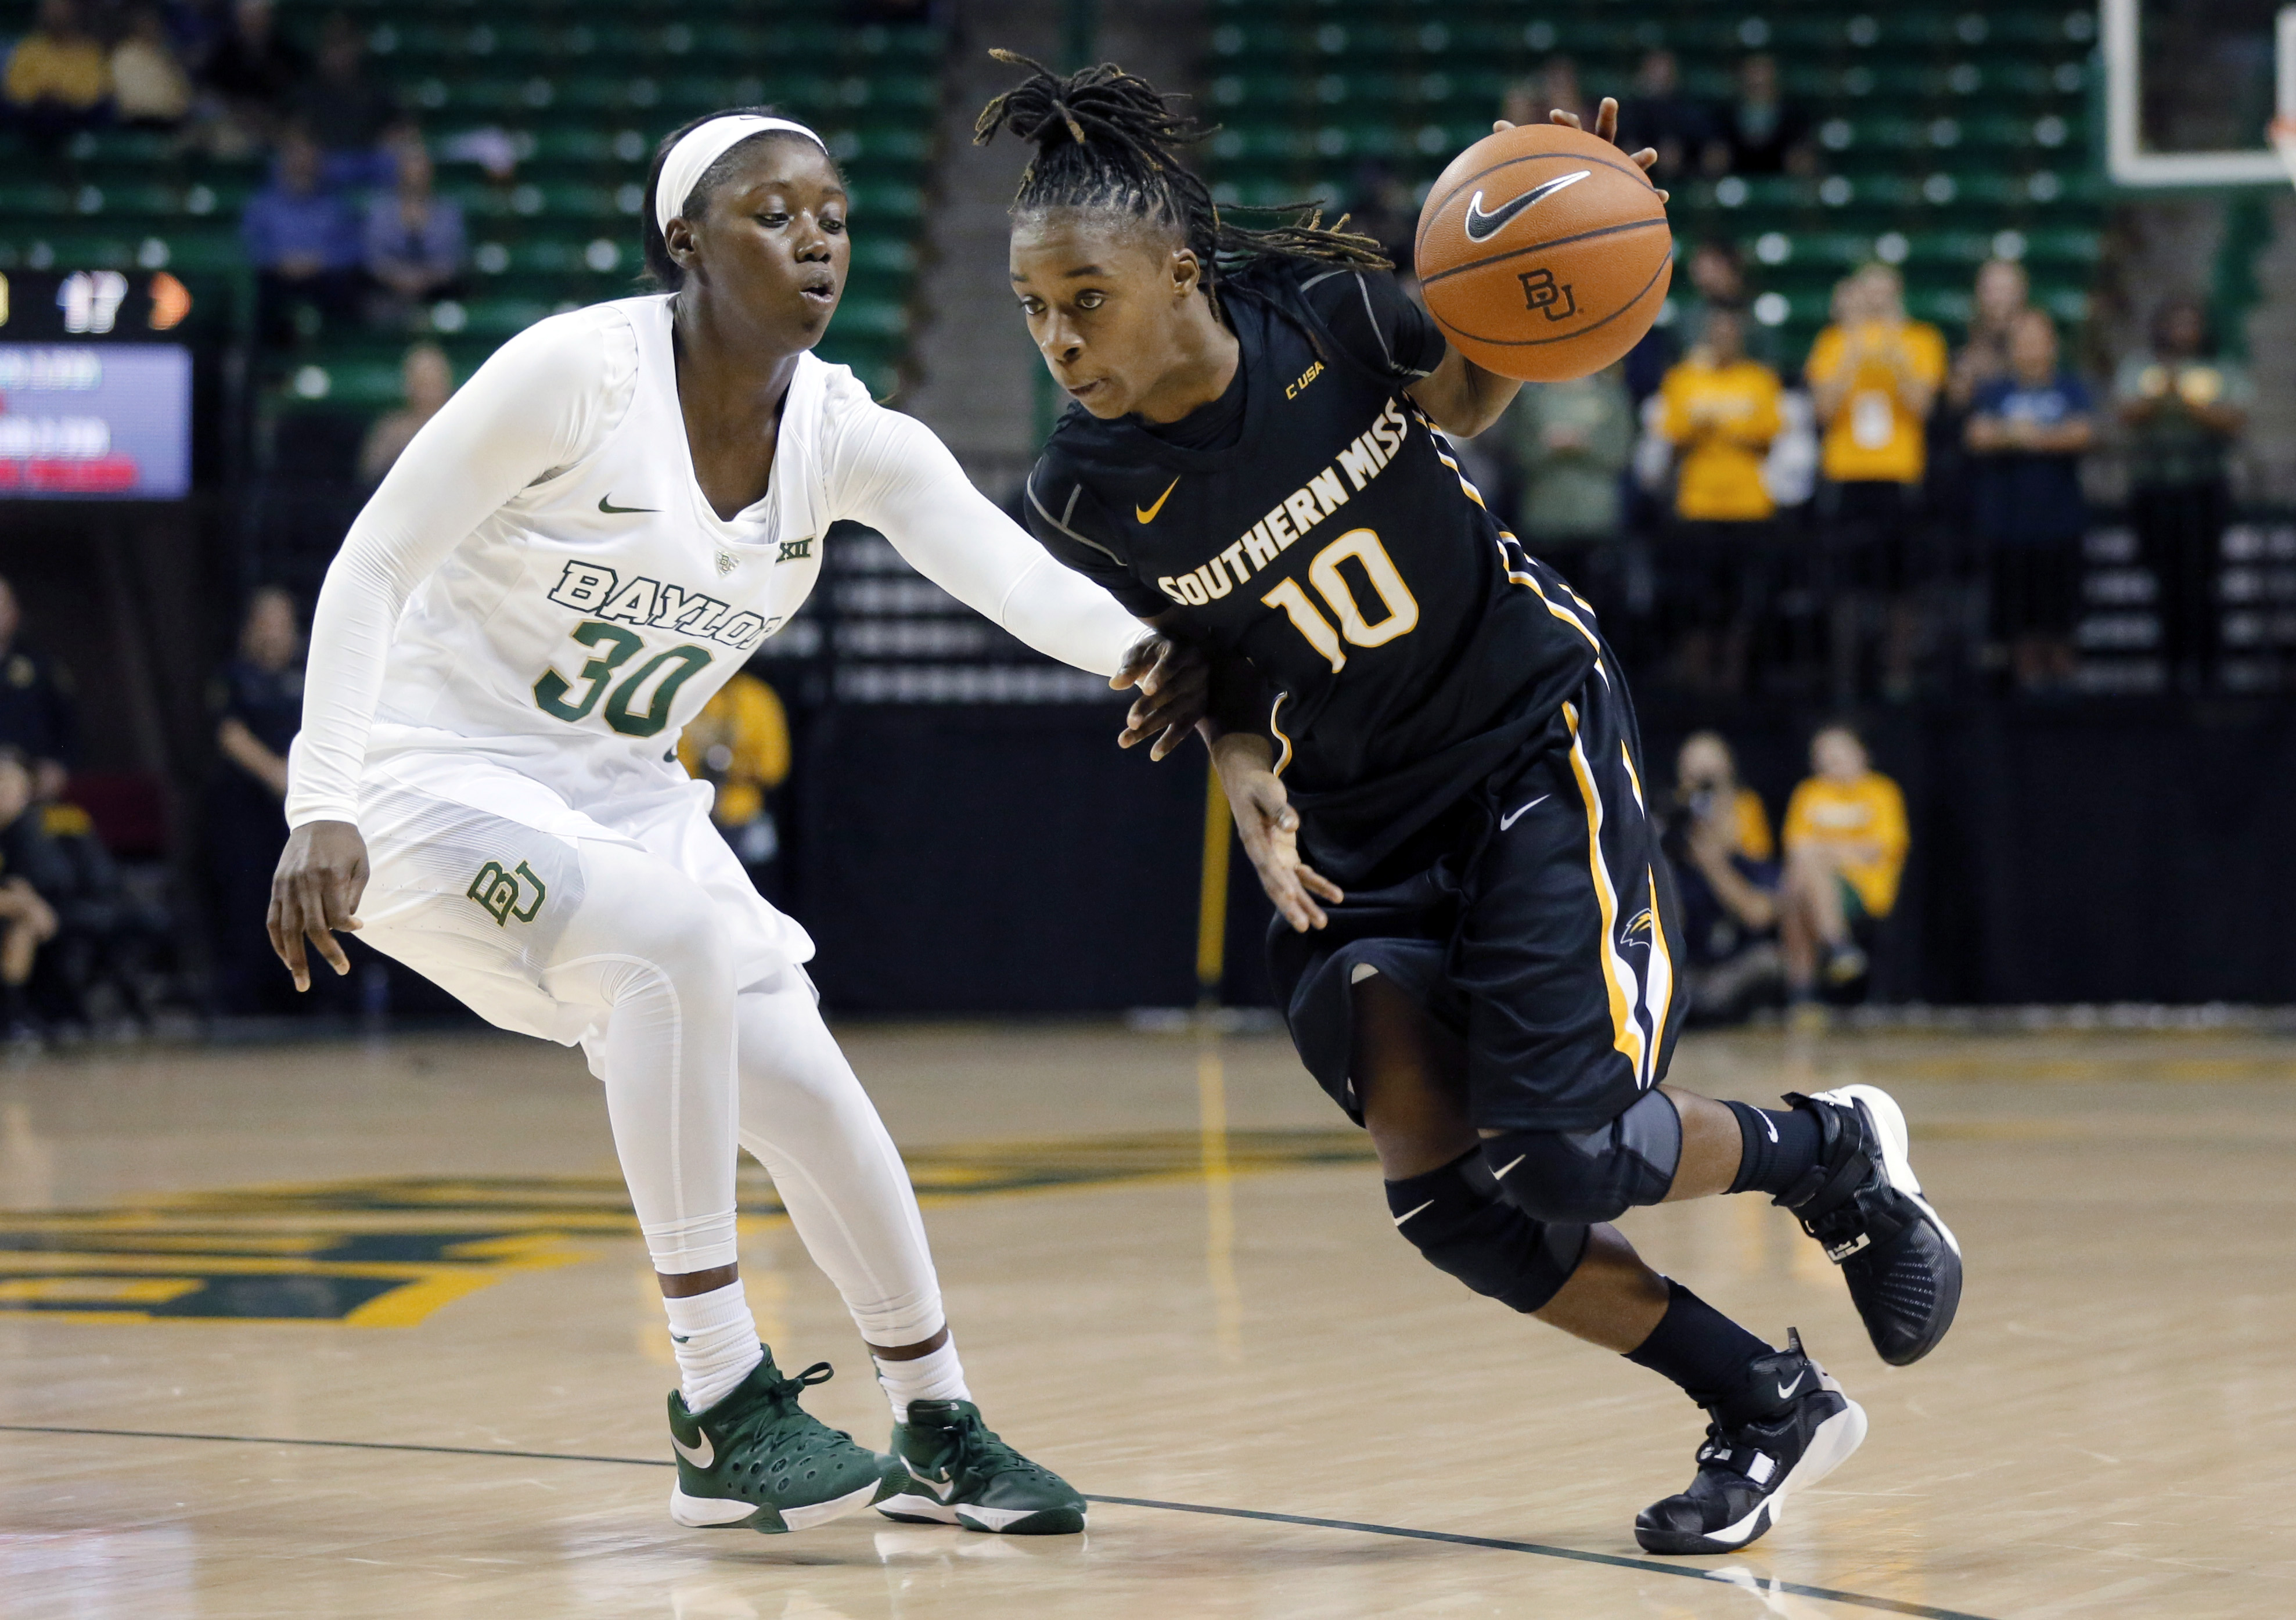 Baylor's Alexis Jones (30) defends as Southern Miss guard Jerontay Clemons (10) drives to the basket in the second quarter of an NCAA college basketball game, Monday, Nov. 16, 2015, in Waco, Texas. (AP Photo/Tony Gutierrez)